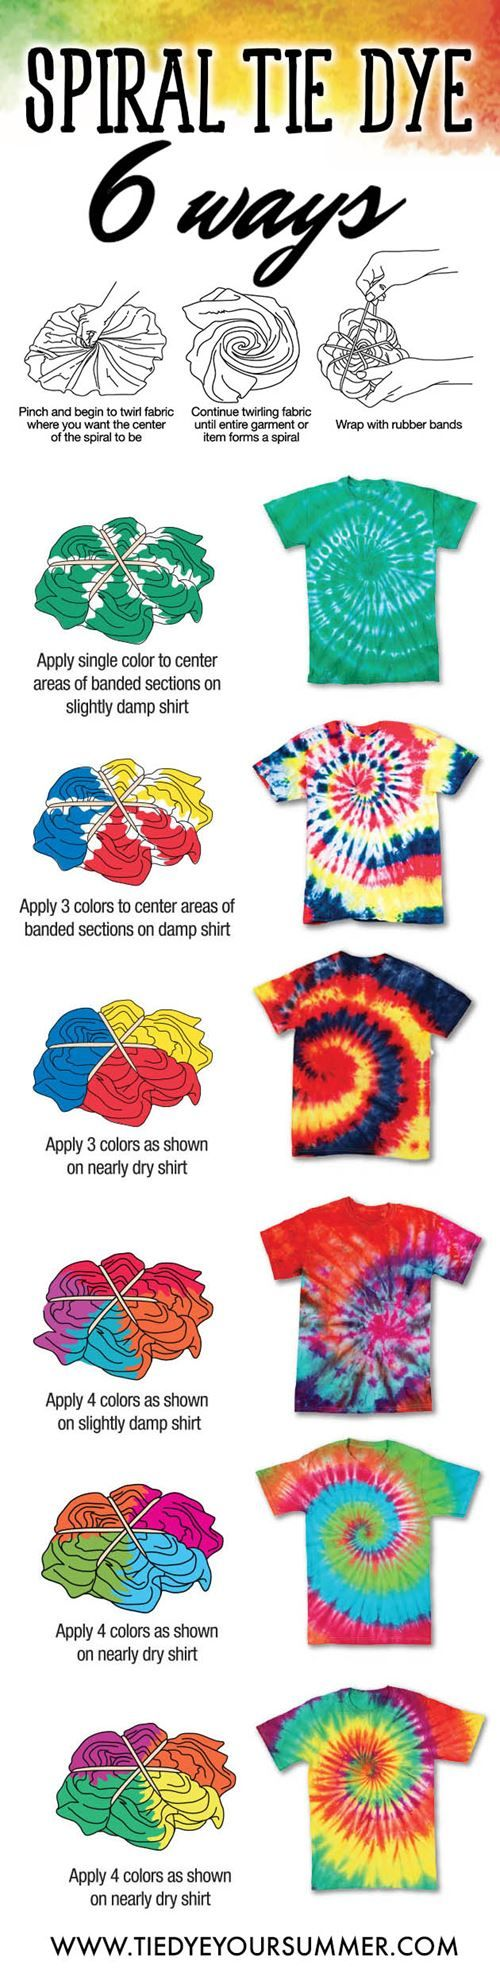 6 Ways To Do Spiral Tie Dye How To Tie Dye And Get Great Results